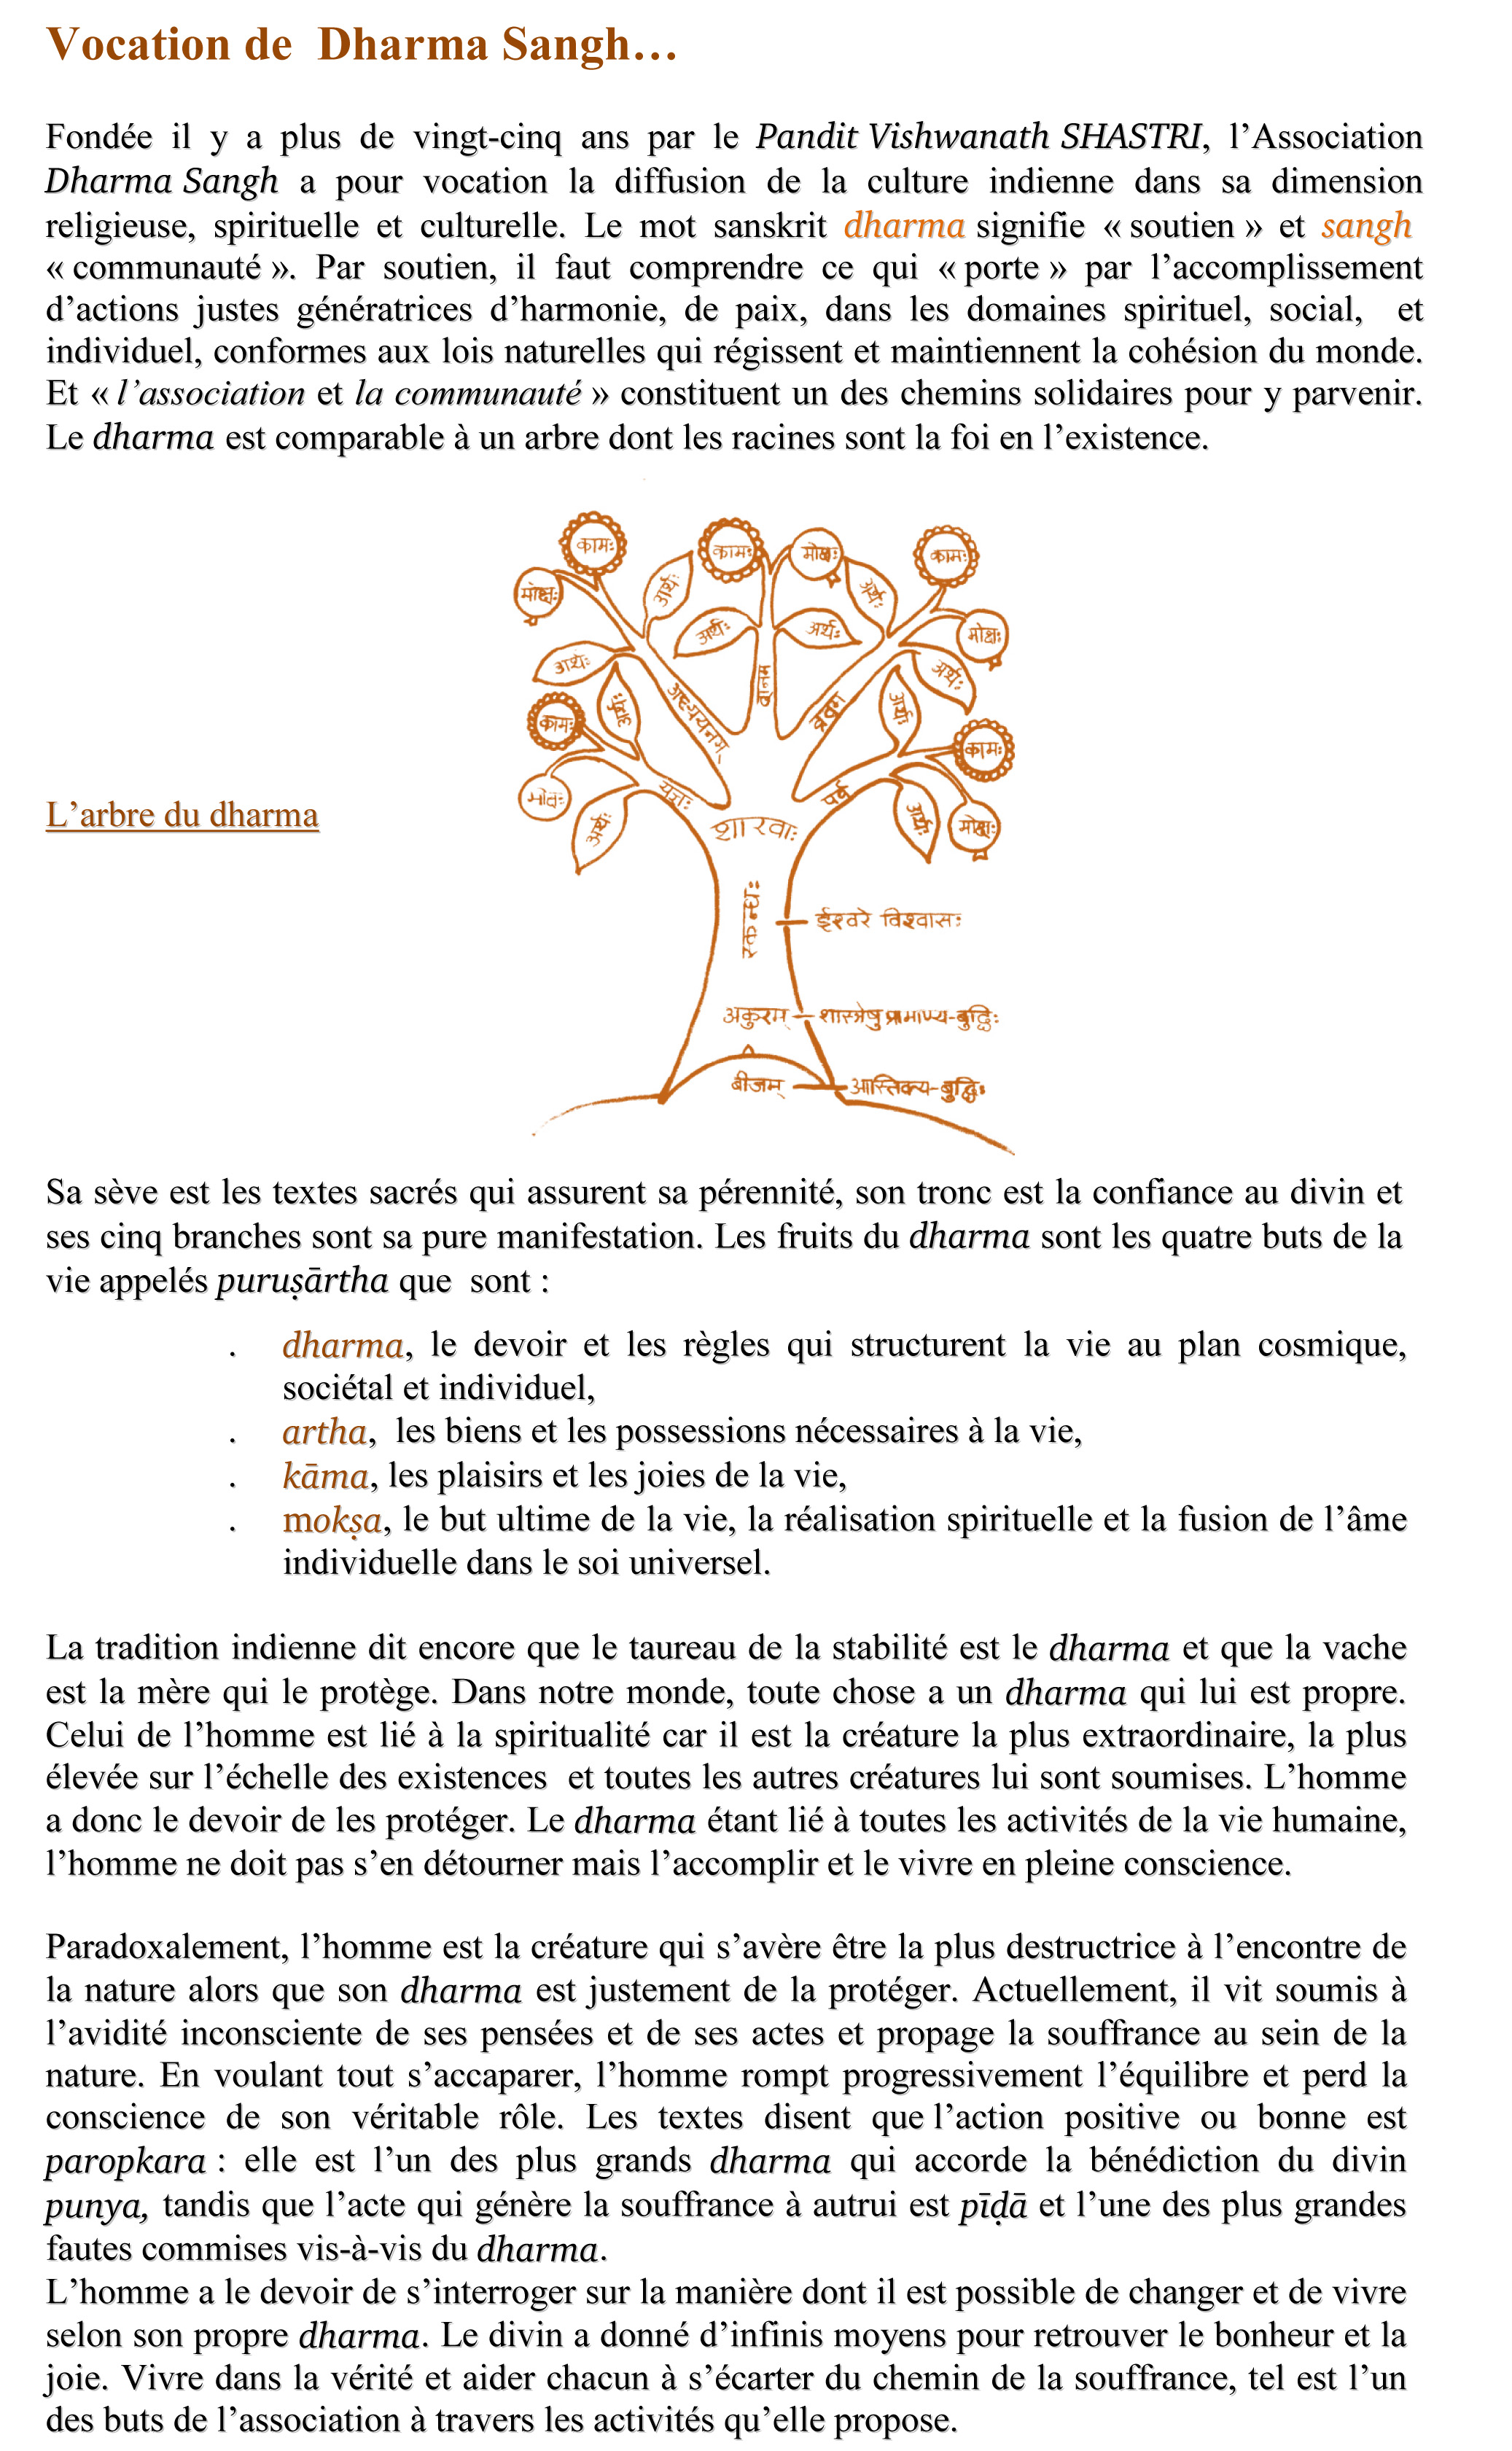 vocation de l'association-1